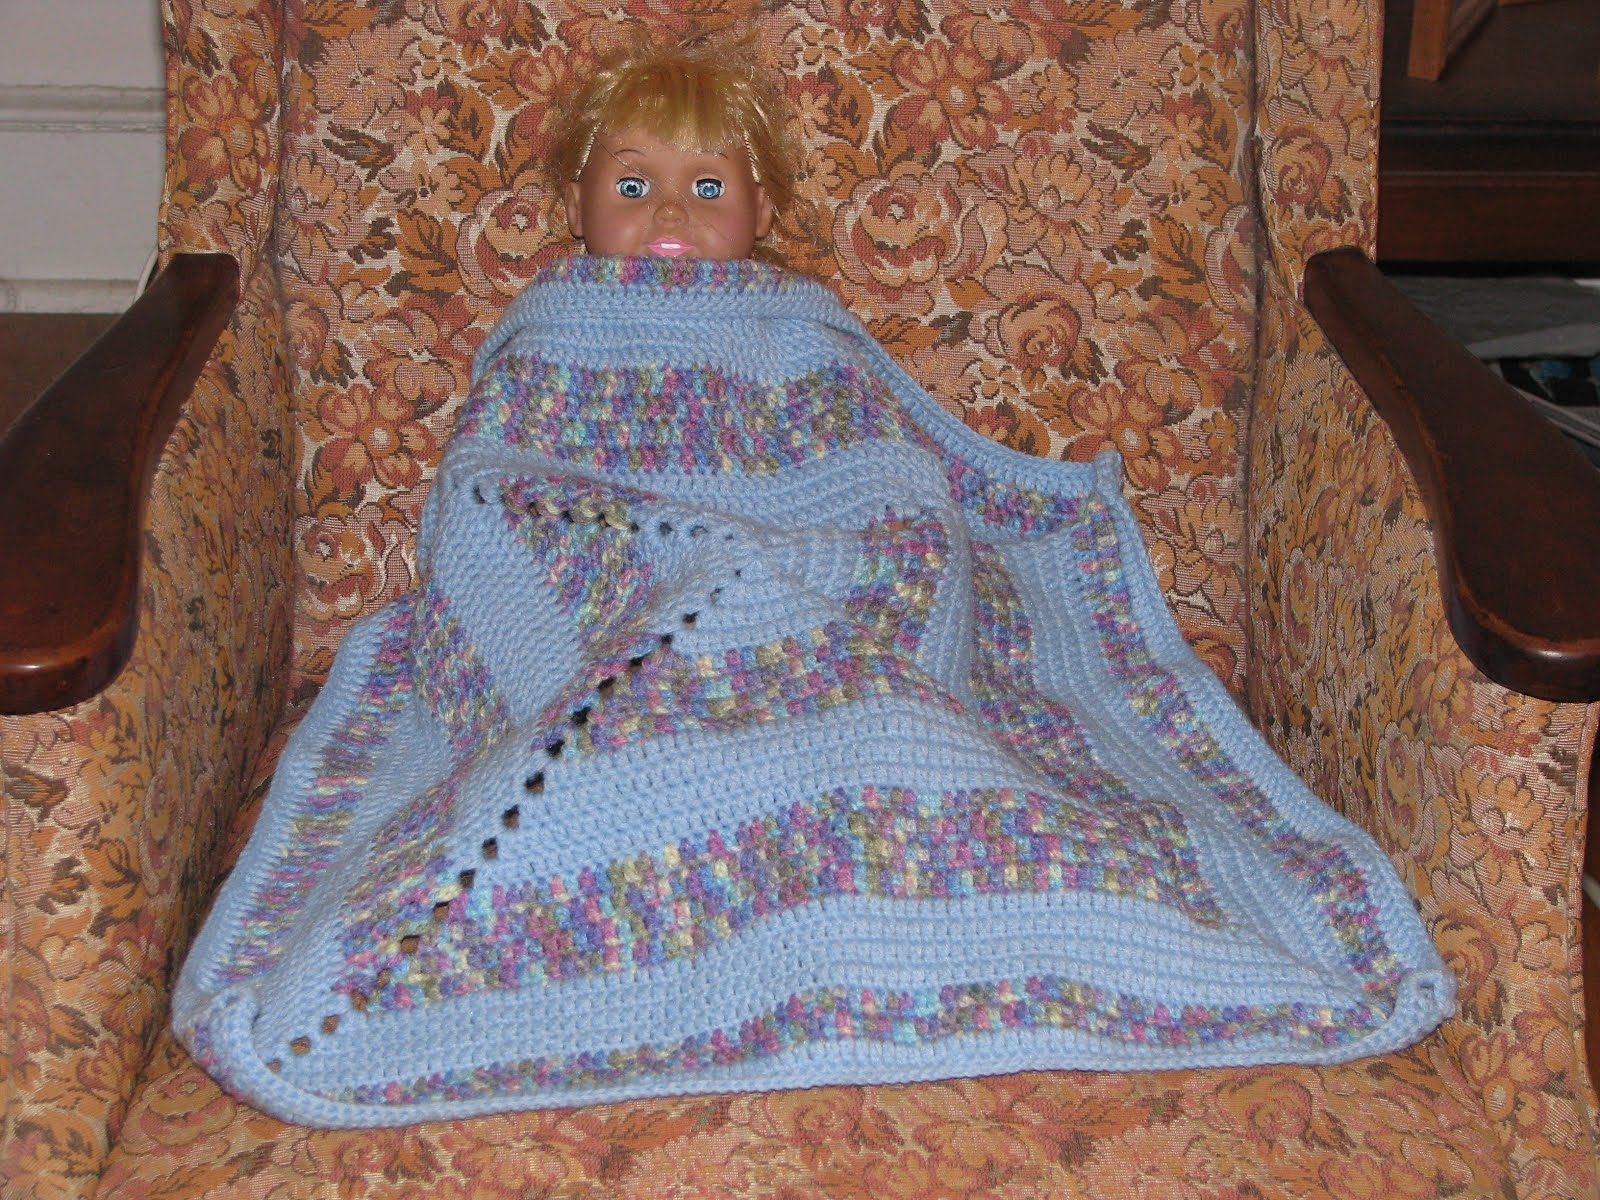 Knitting Patterns For Dolls Bedding : Craft Attic Resources: Doll Blankets and Pillow Patterns Knit and Crochet